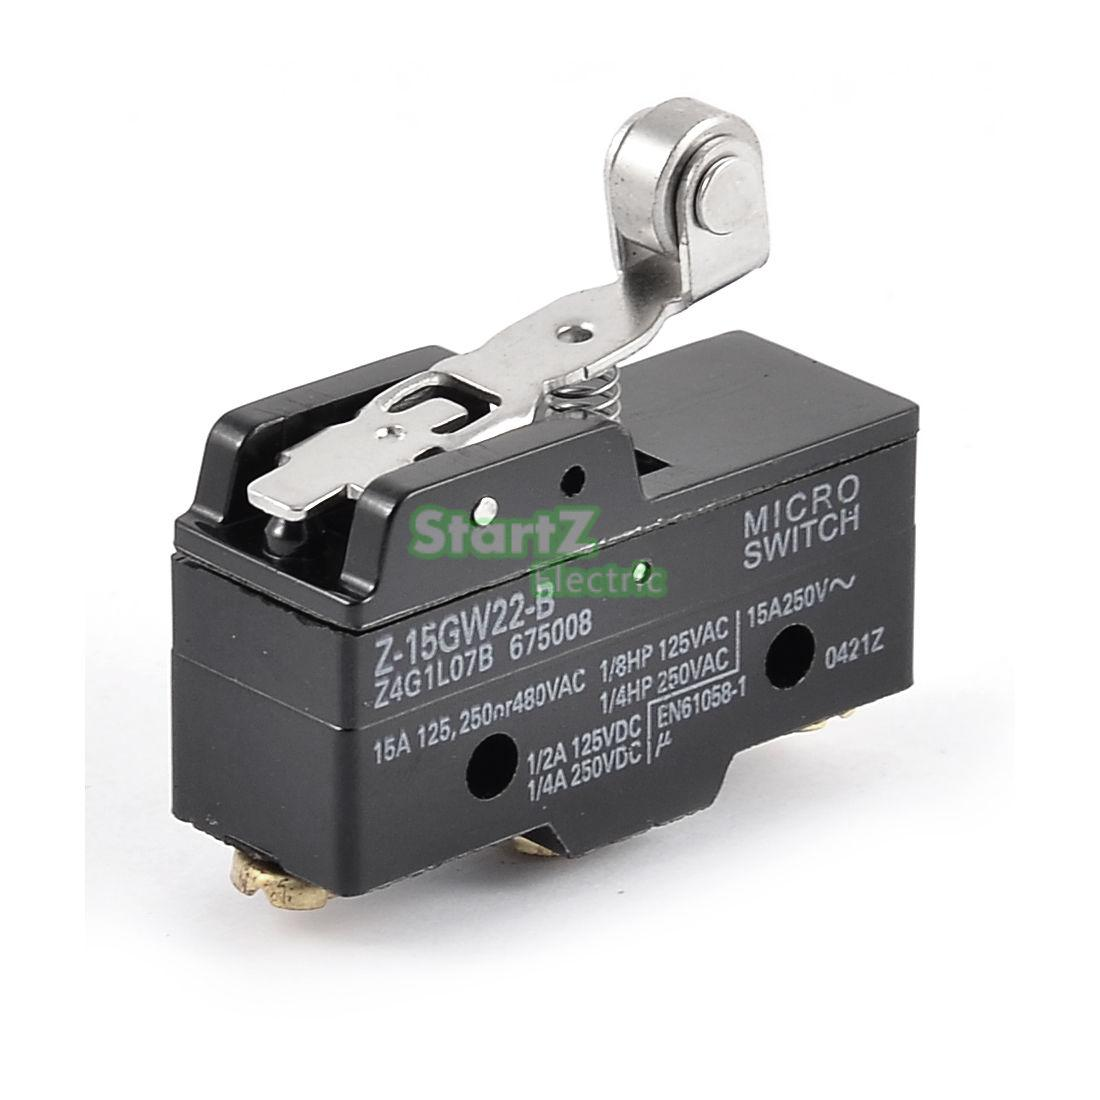 Short Roller Hinge Normally Open/Close Micro Lever Limit Switch  Z-15GW22-B